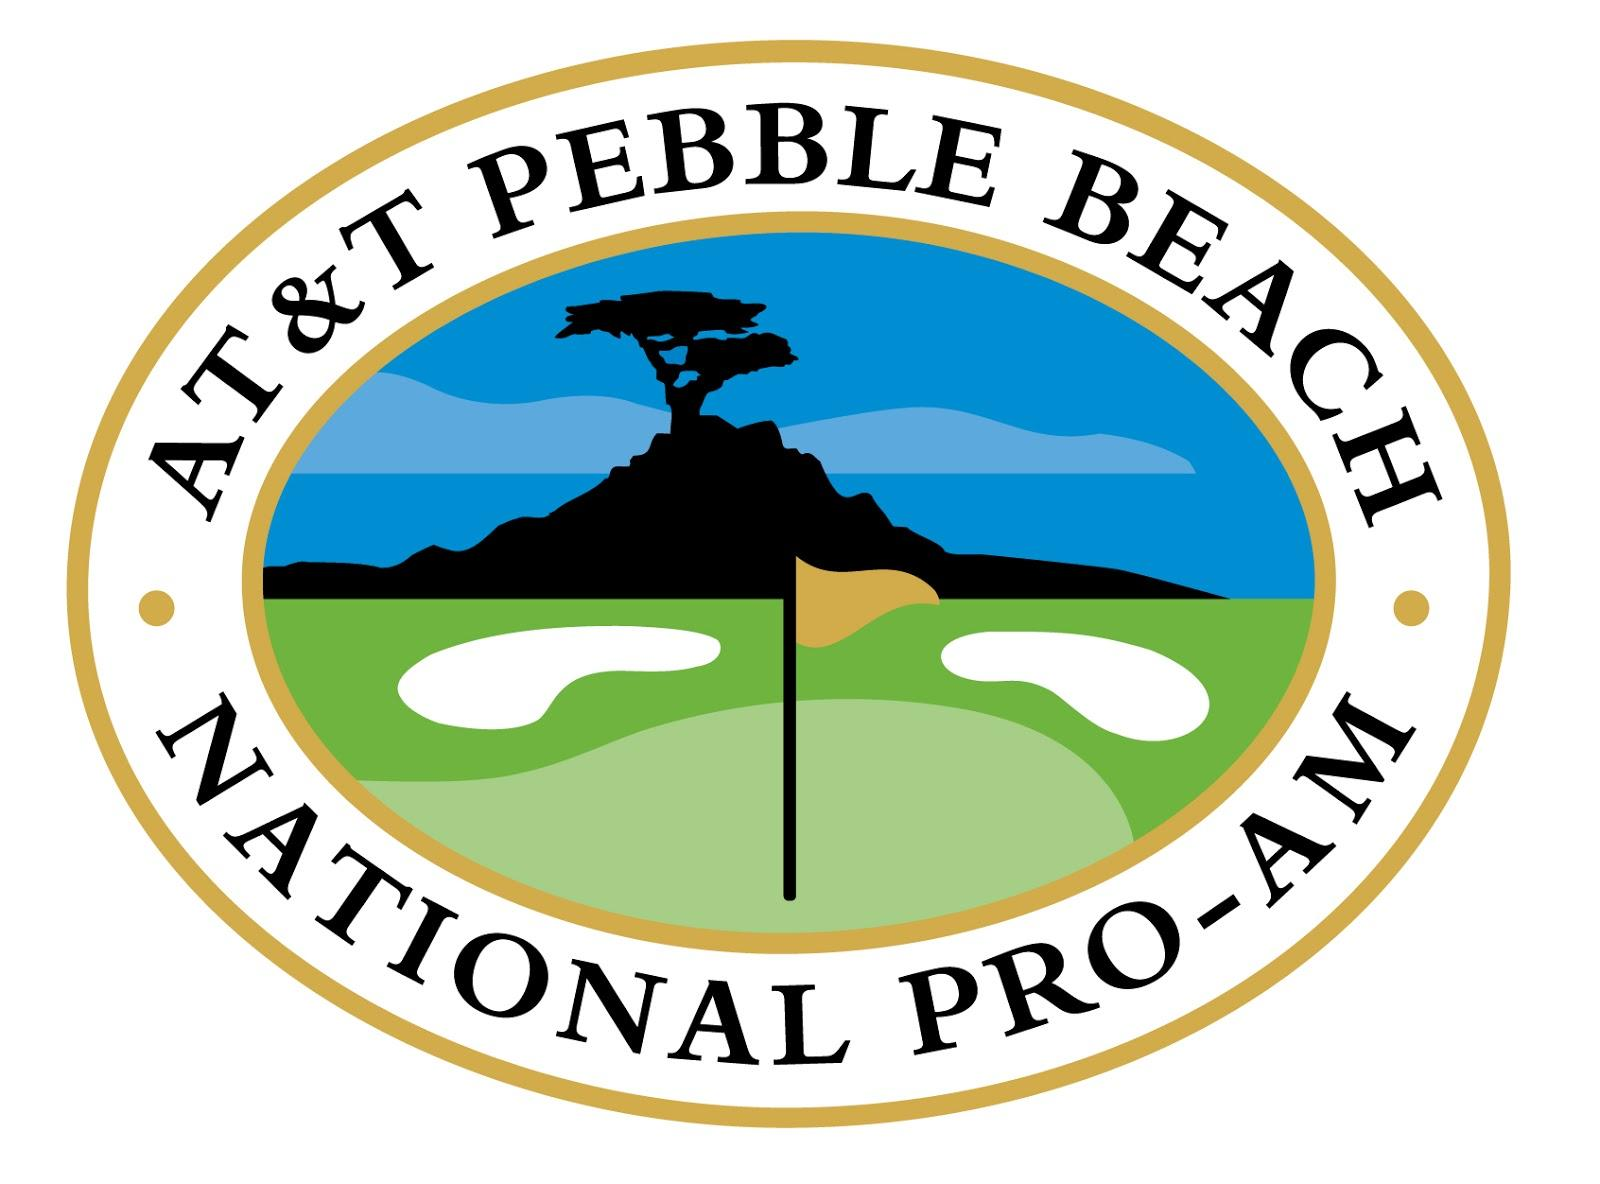 AT & T Pebble Beach National Pro-Am